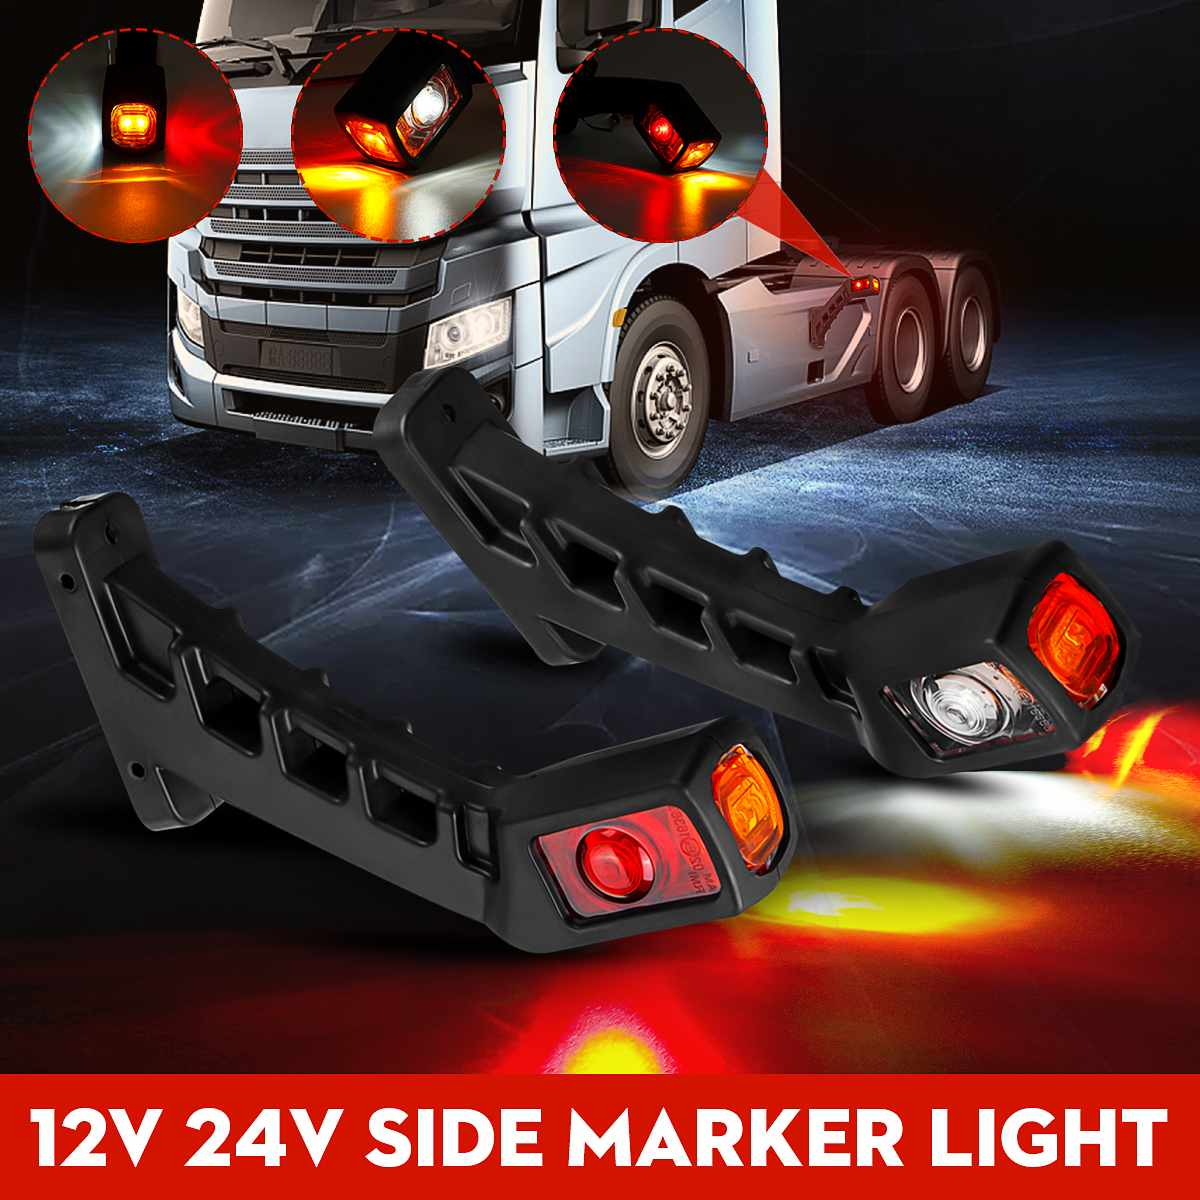 Pair Universal 12V 24V Car Truck LED Double Side Marker Light Waterproof Dual Indicator Lamp For Trailer Lorry Caravan